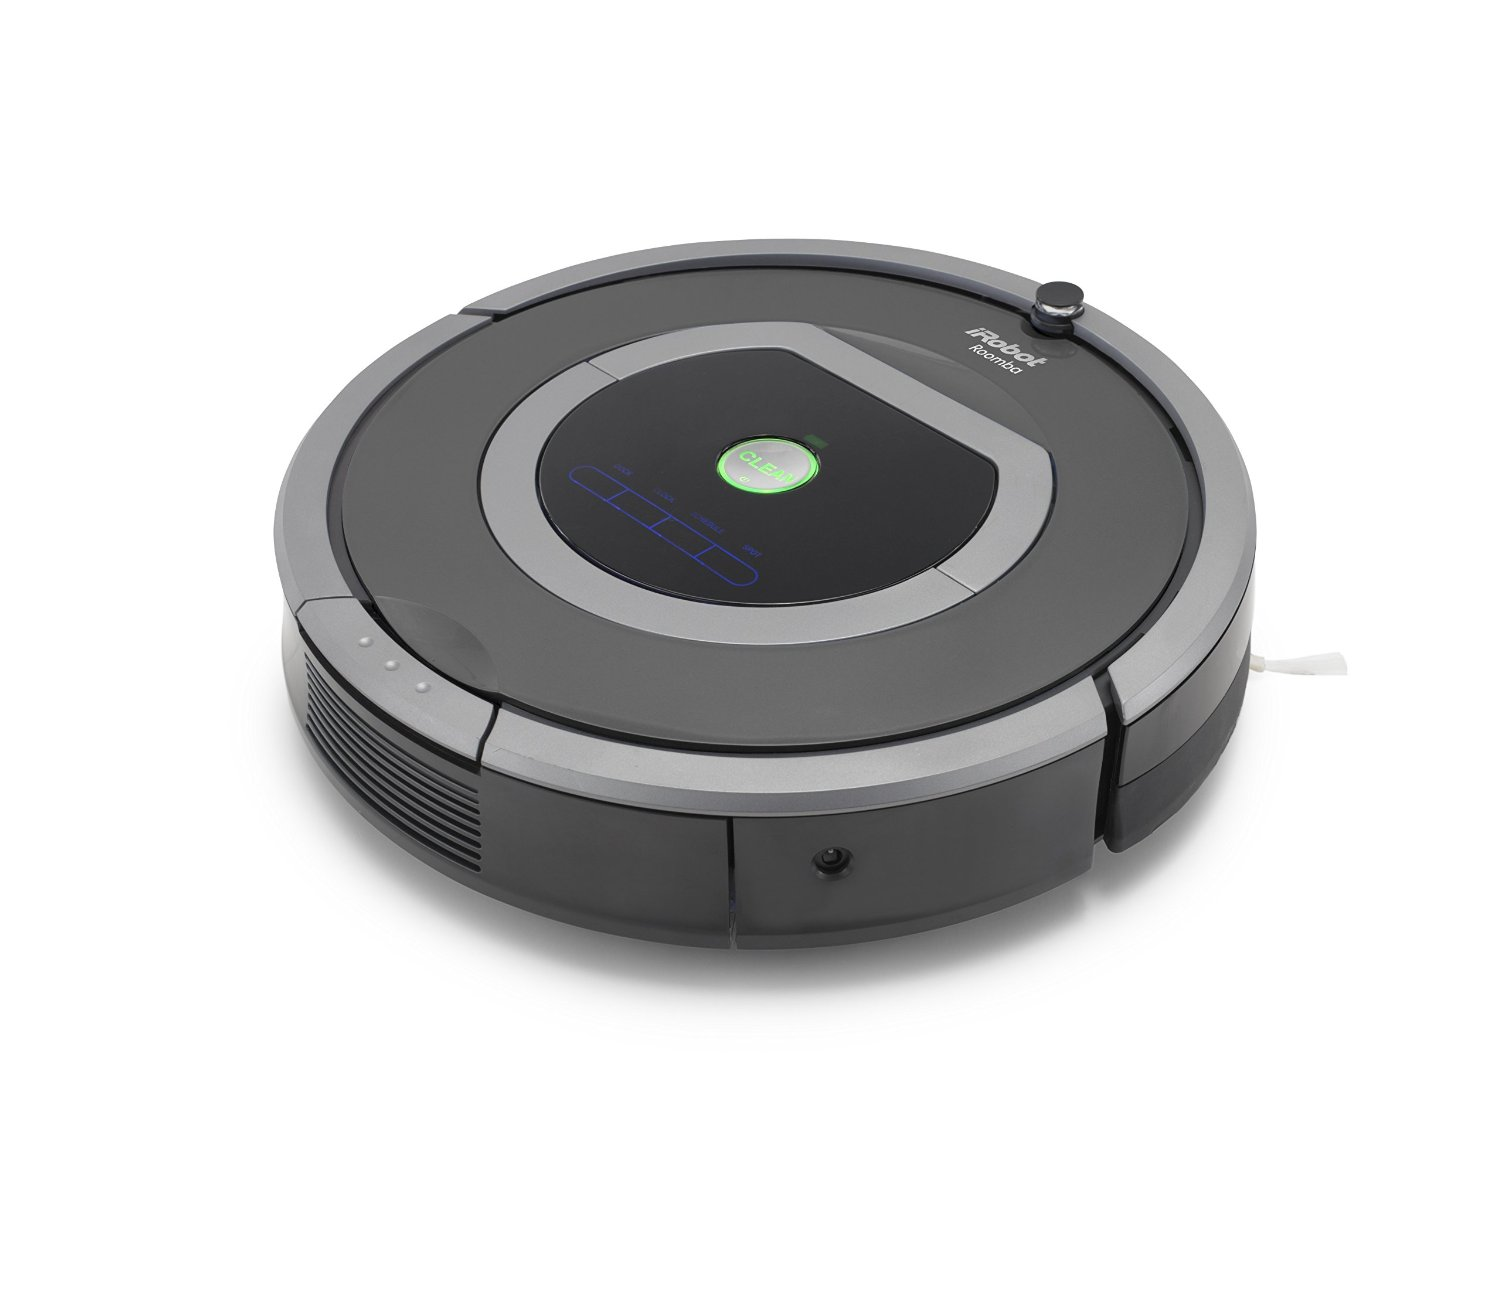 PURE CLEAN PUCRC50 Robot Vacuum - Automatic Mopping Robotic Cleaner with Water Tank Fast Shipping · Explore Amazon Devices · Shop Our Huge Selection · Deals of the Day.